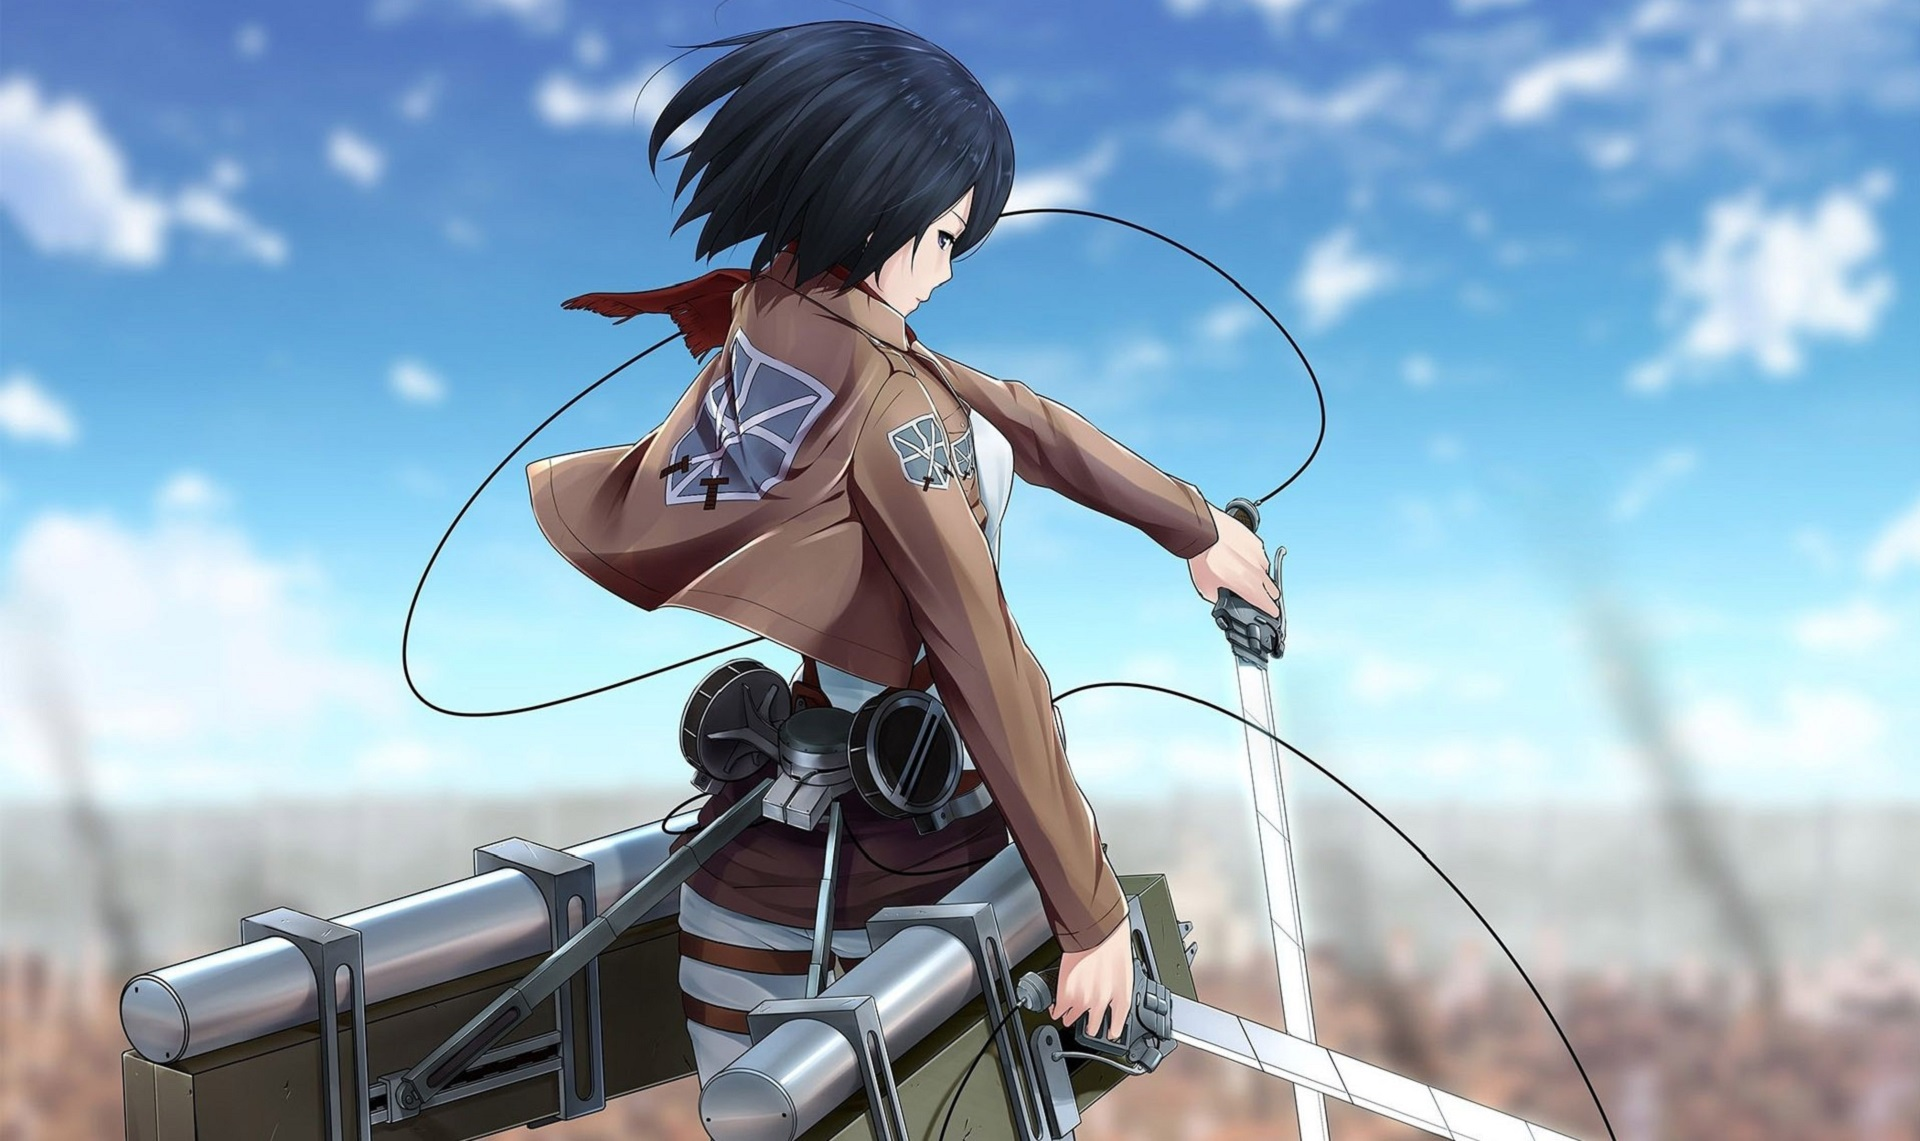 Mikasa Ackerman Background Attack On Titan Mikasa Wallpaper 4k 473458 Hd Wallpaper Backgrounds Download